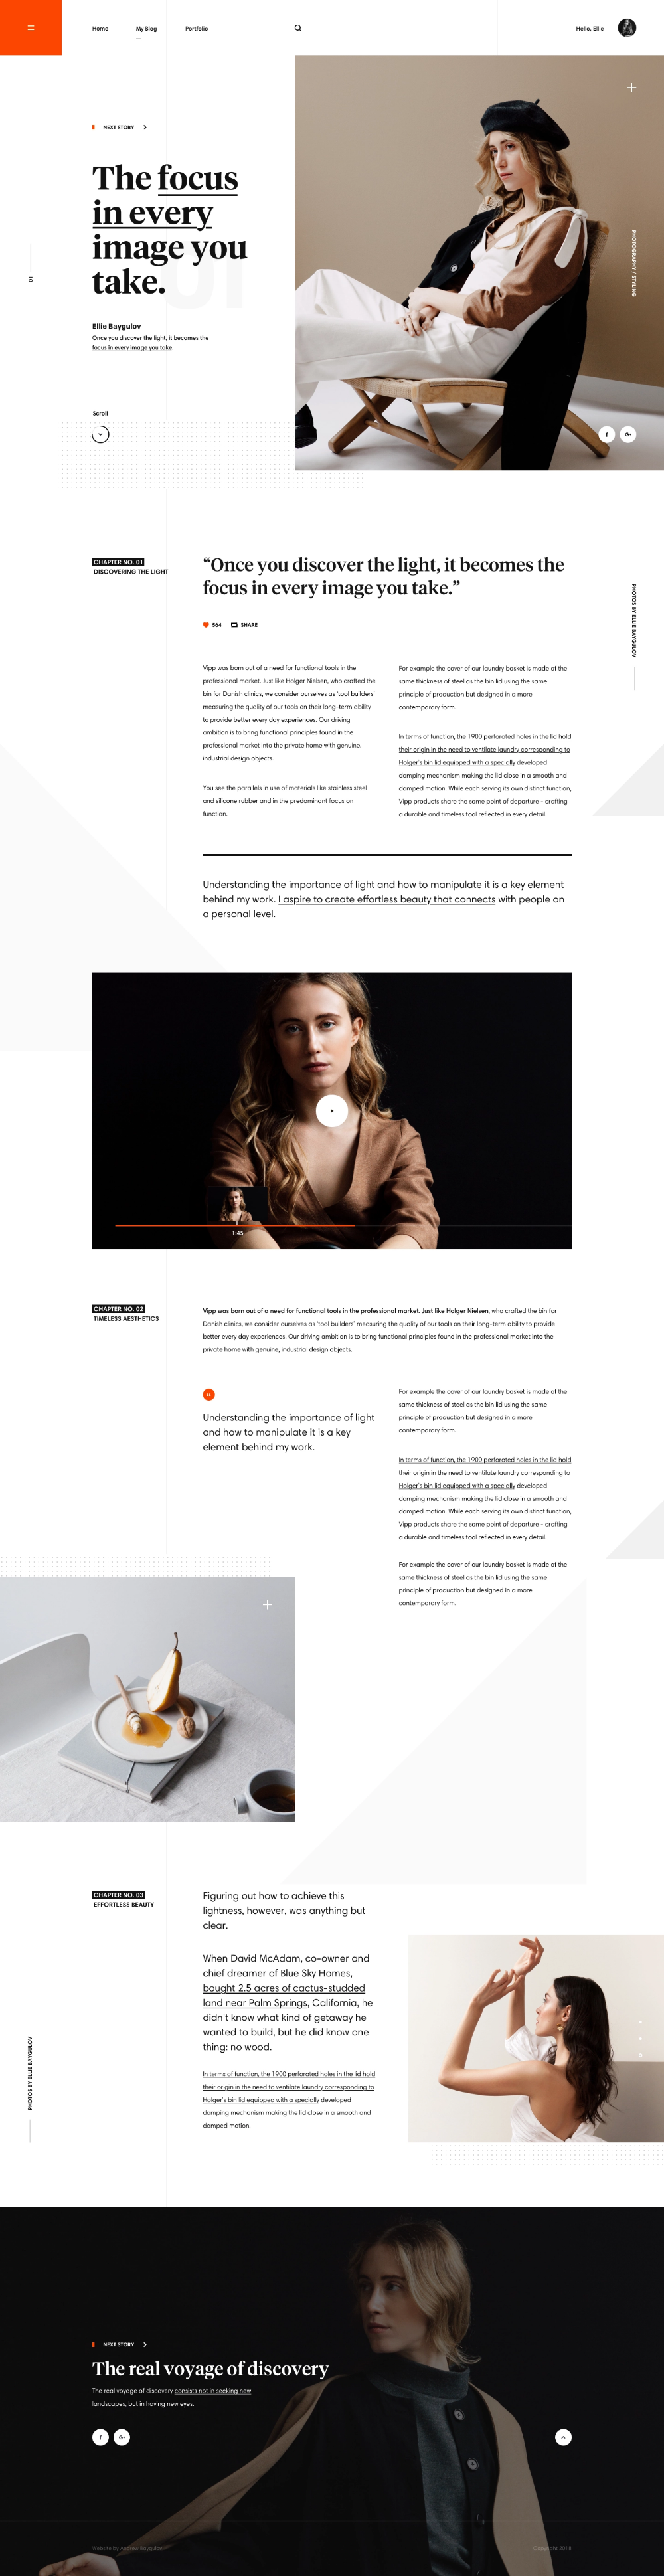 Pin By Young On Just Losing Time Simple Web Design News Web Design Website Design Inspiration